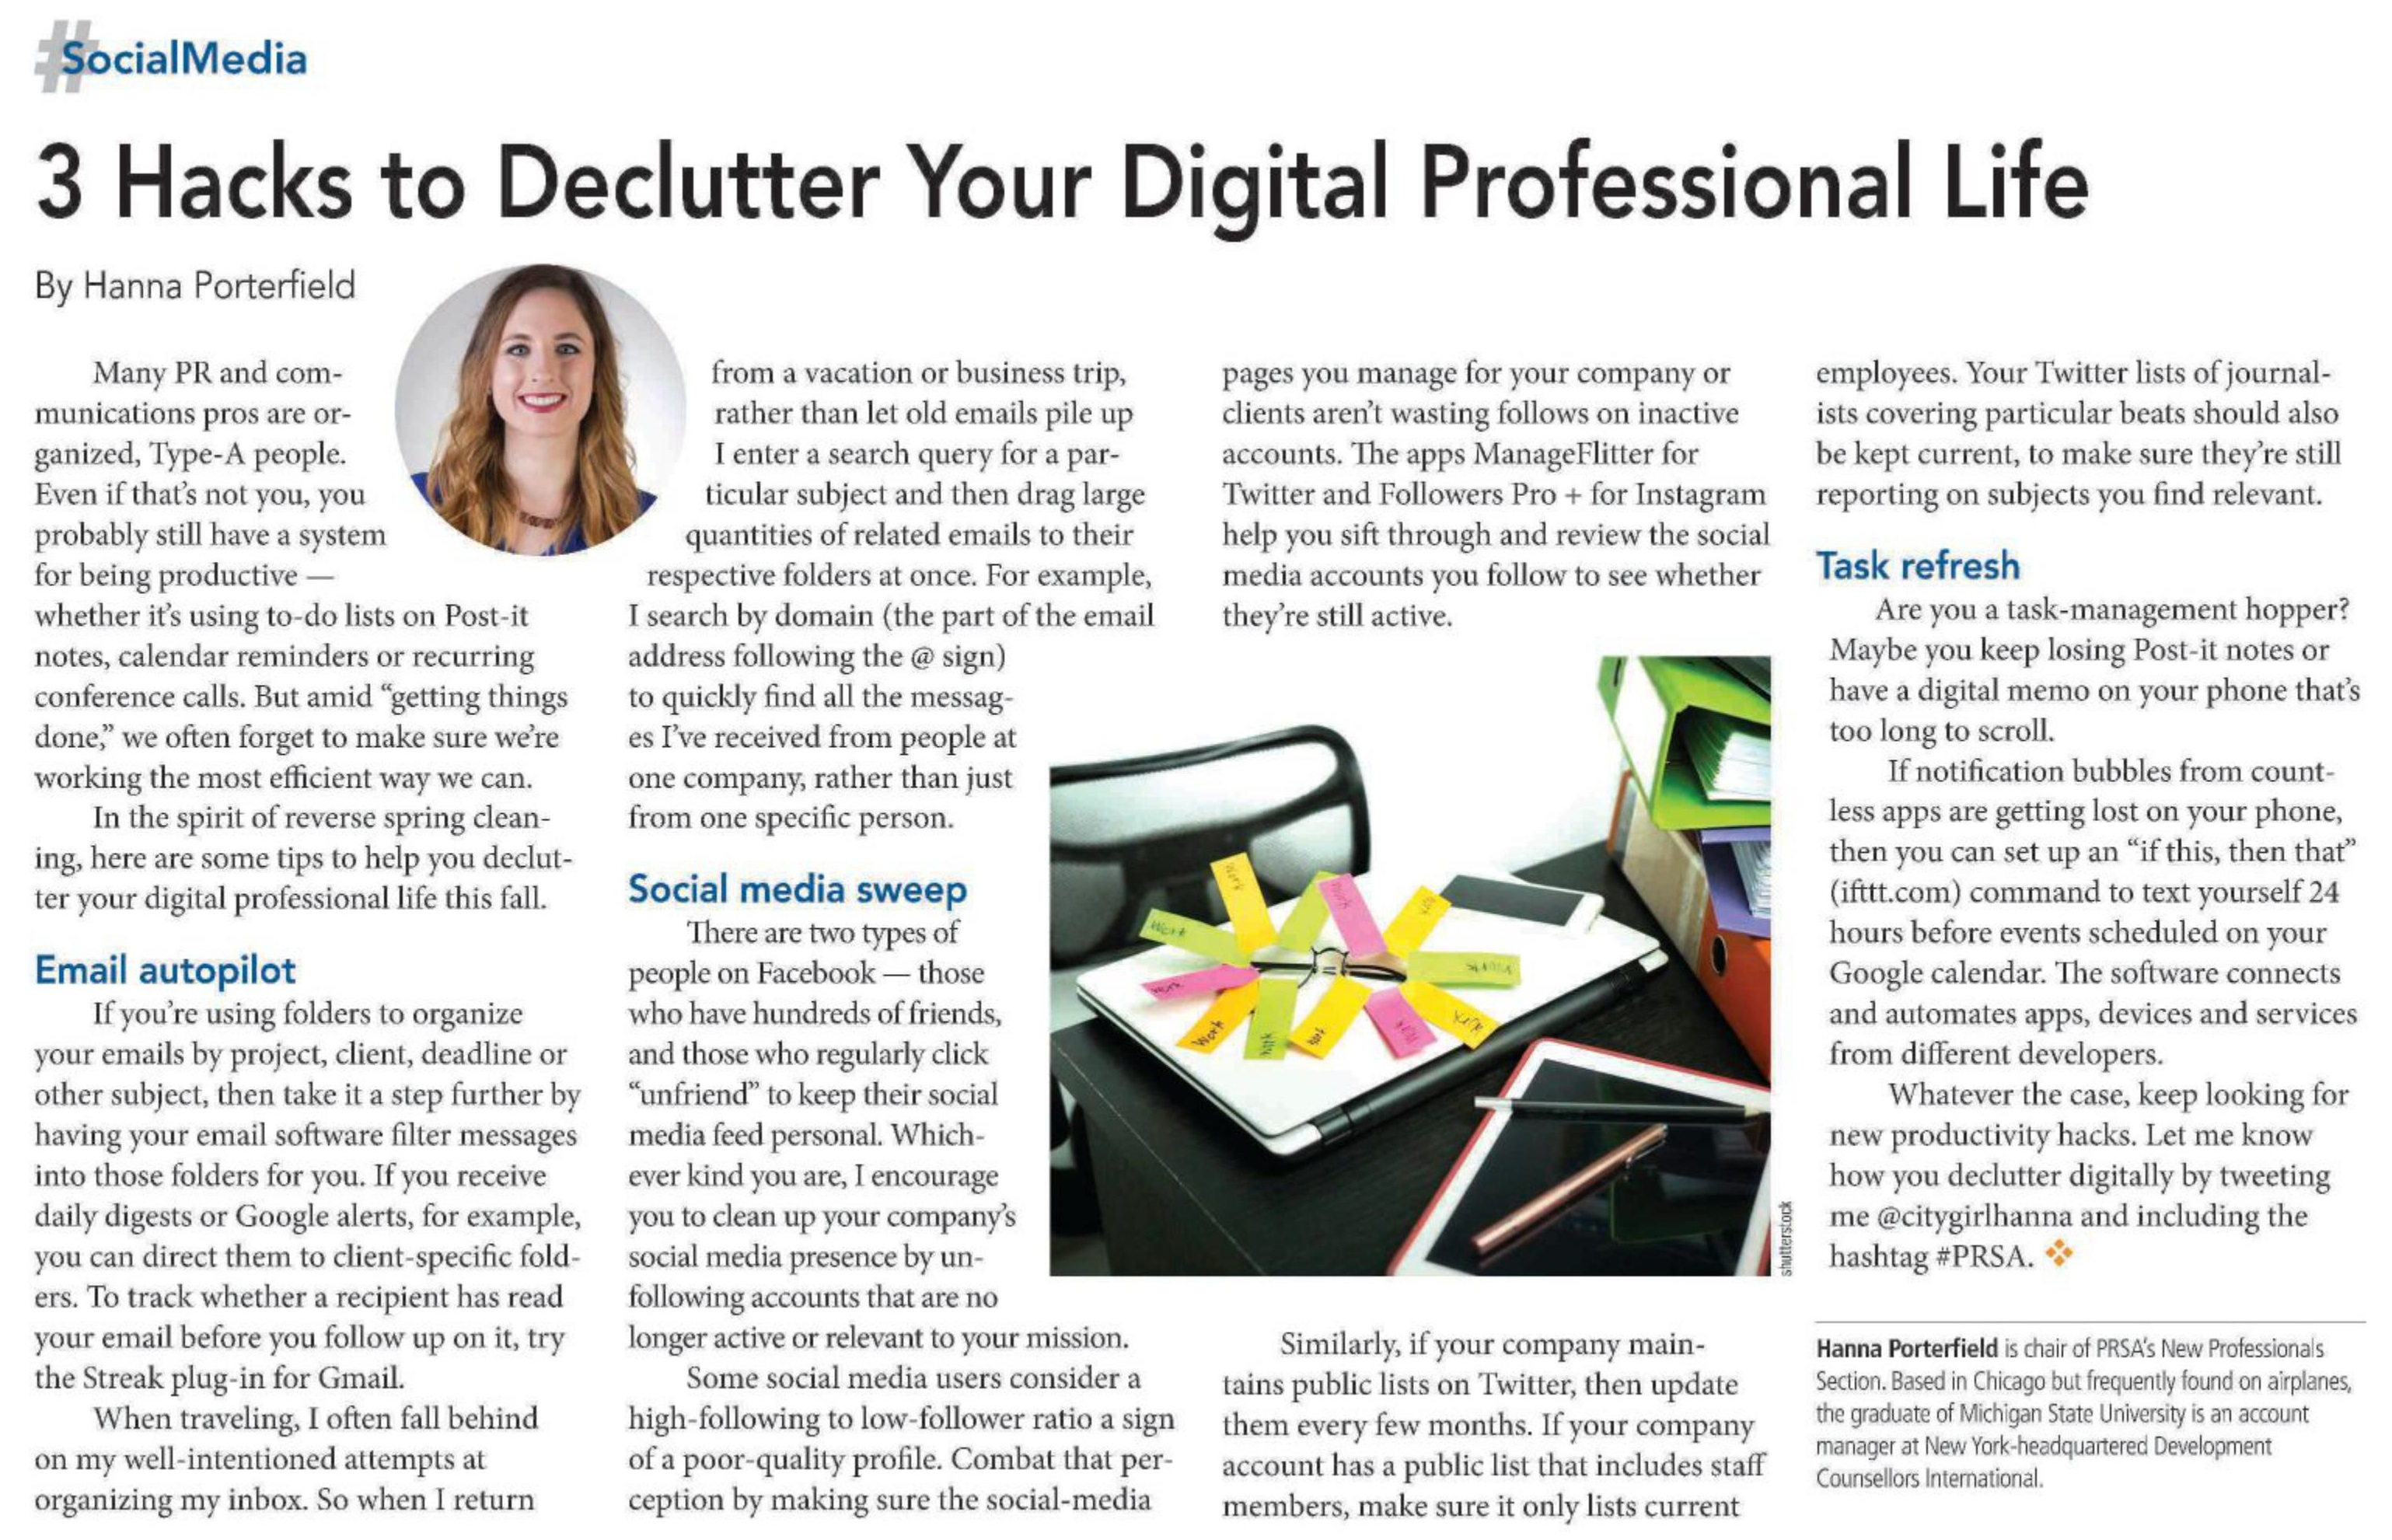 3 hacks to declutter your digital professional life